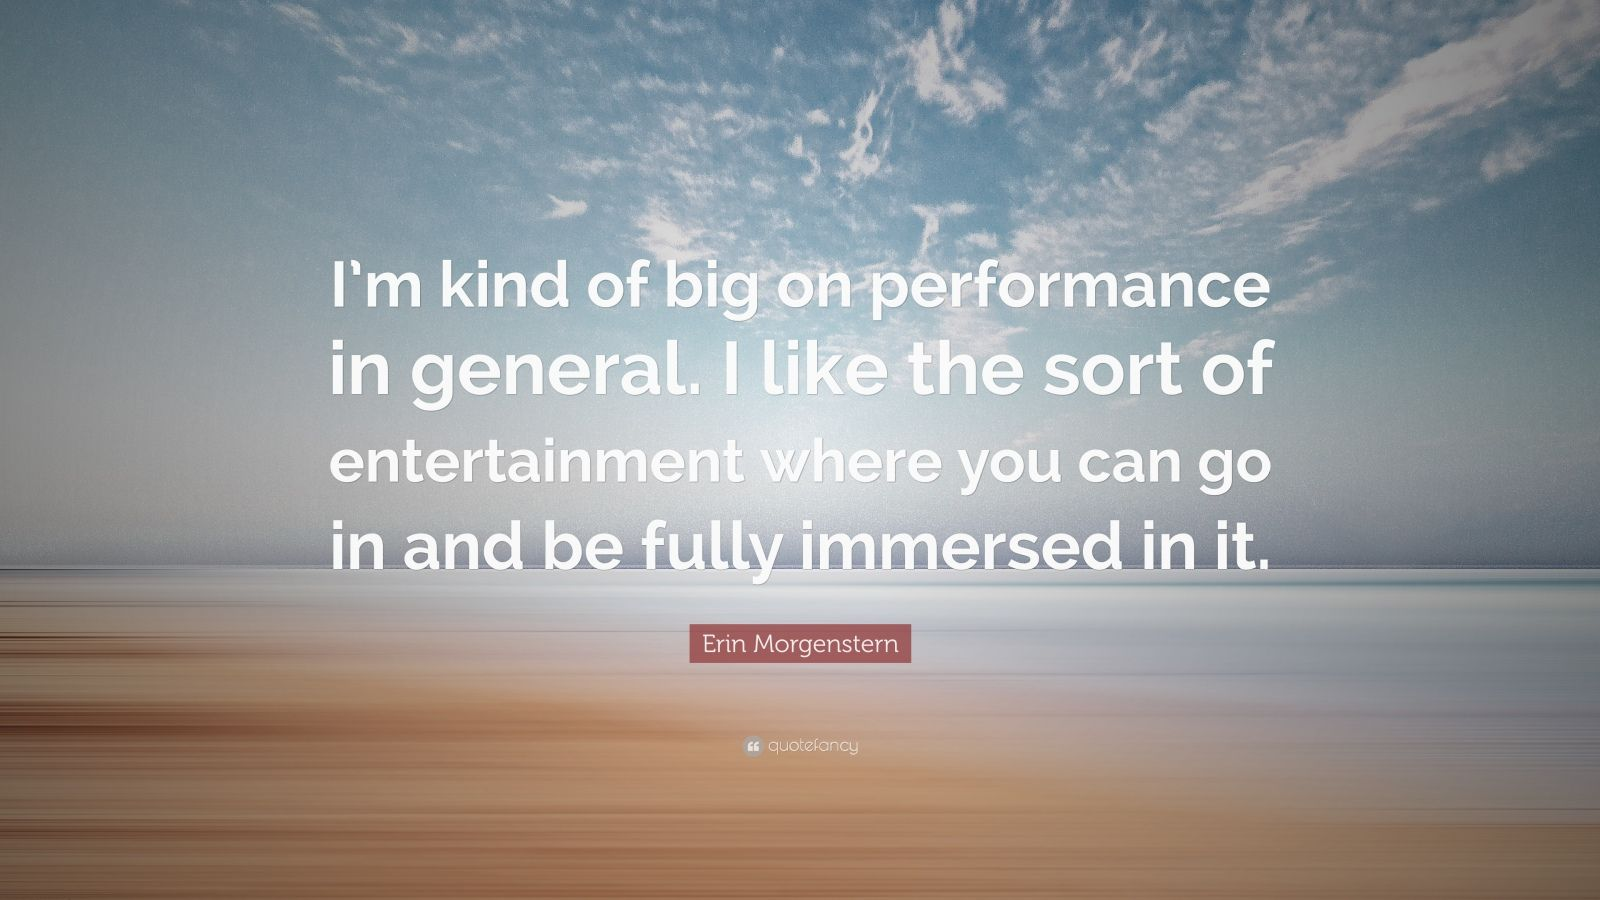 """Erin Morgenstern Quote: """"I'm kind of big on performance in general. I like the sort of entertainment where you can go in and be fully immersed in it."""""""